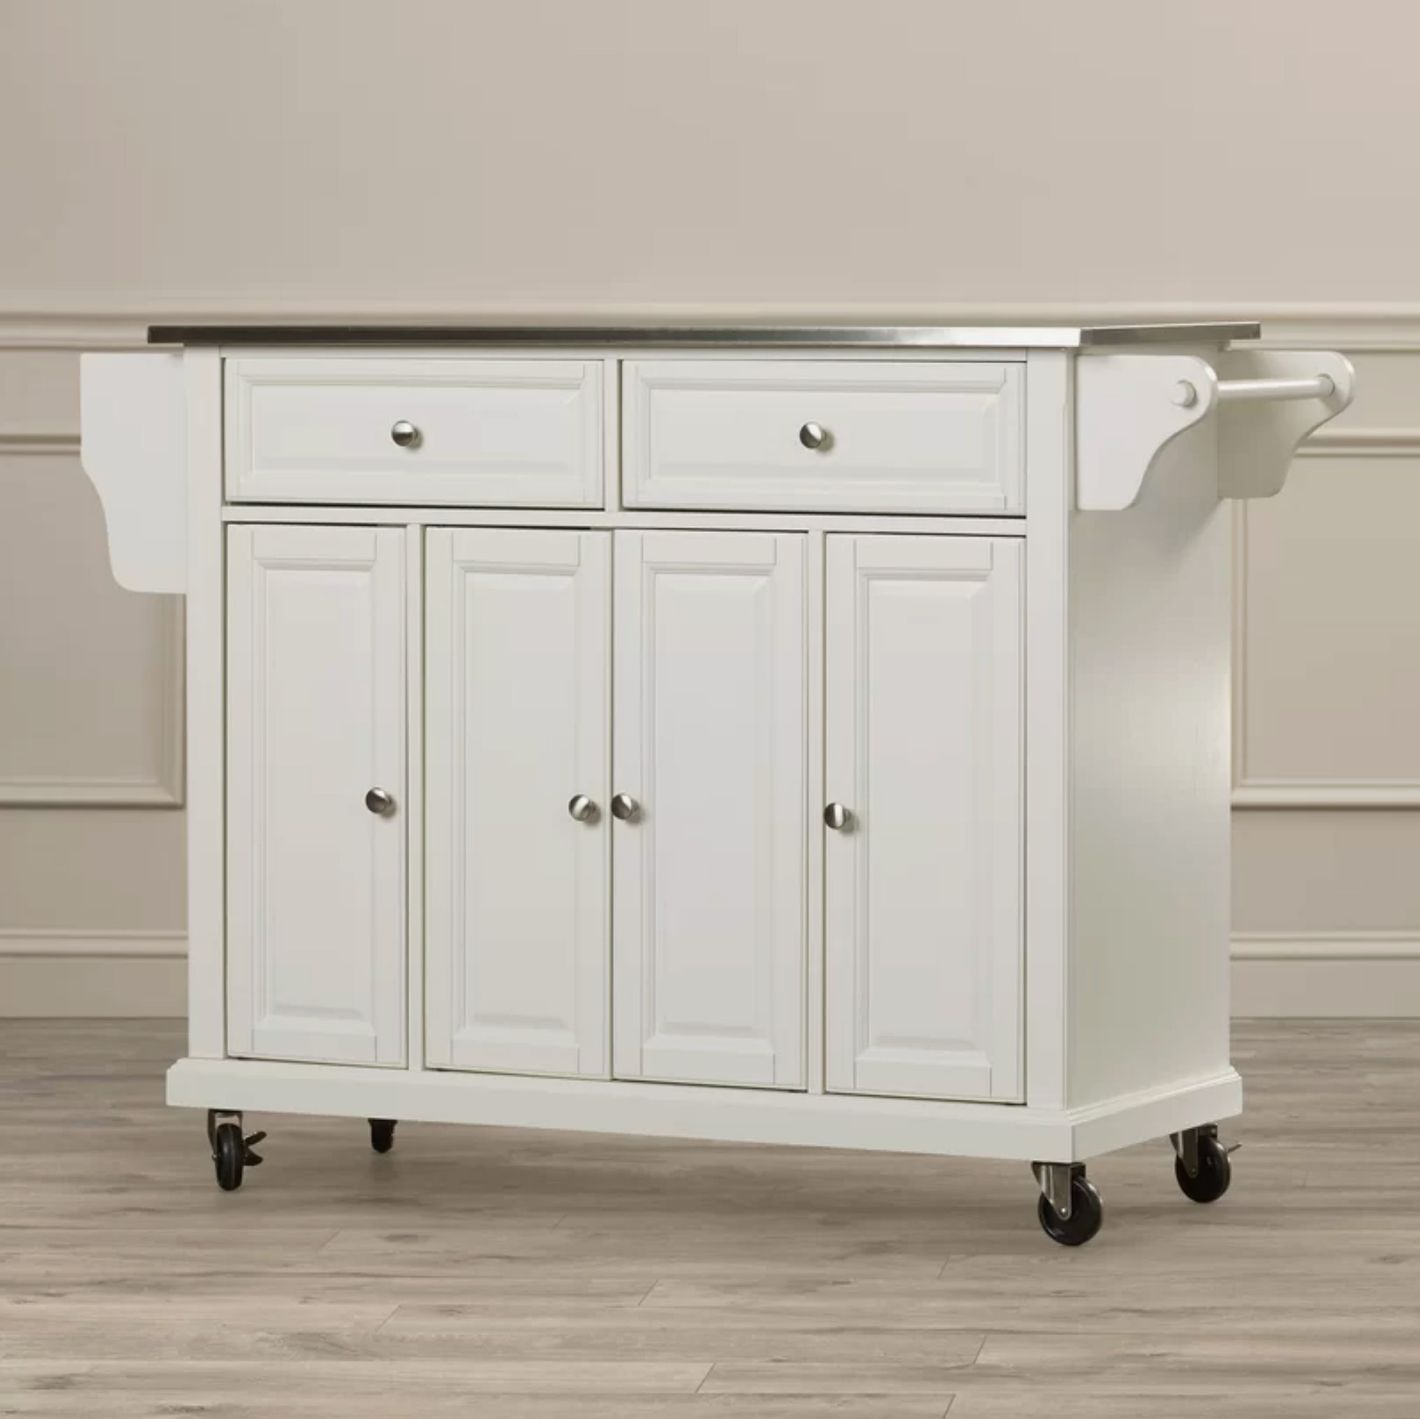 Darby Home Co. Pottstown Kitchen Island with Stainless Steel Top